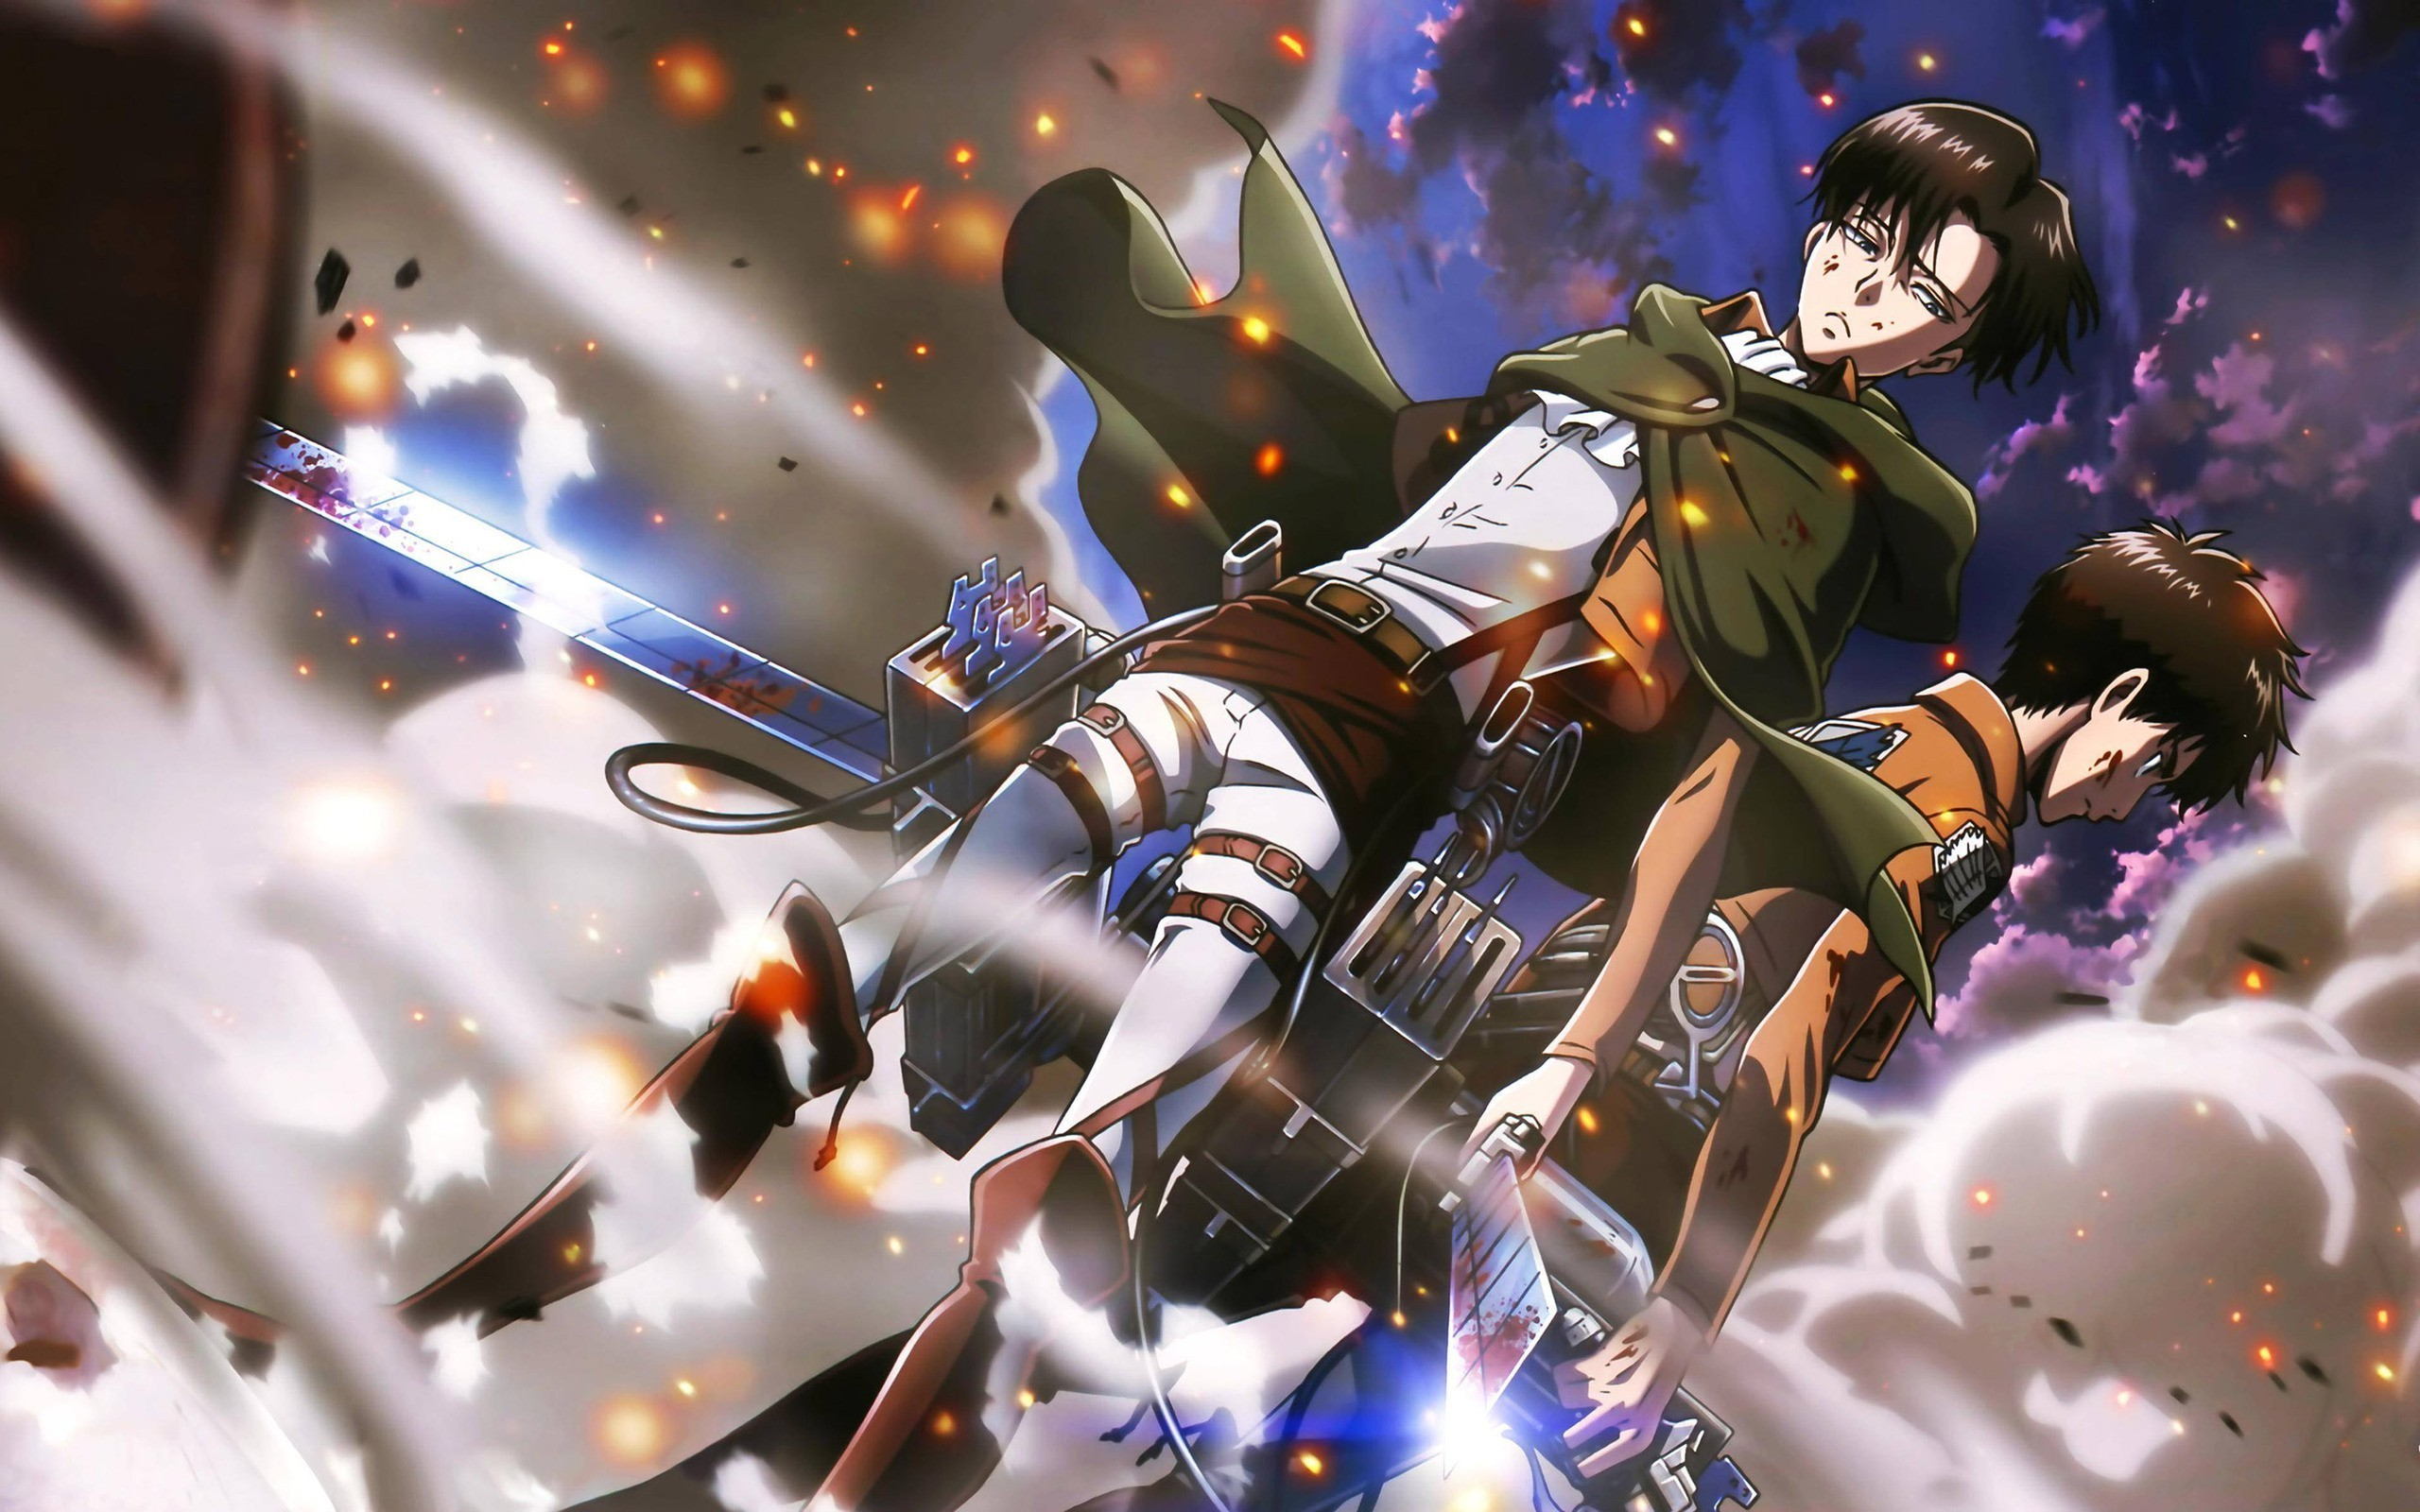 Pictures Of Levi Ackerman Eren And Levi Wallpaper Mobile 2560x1600 Download Hd Wallpaper Wallpapertip